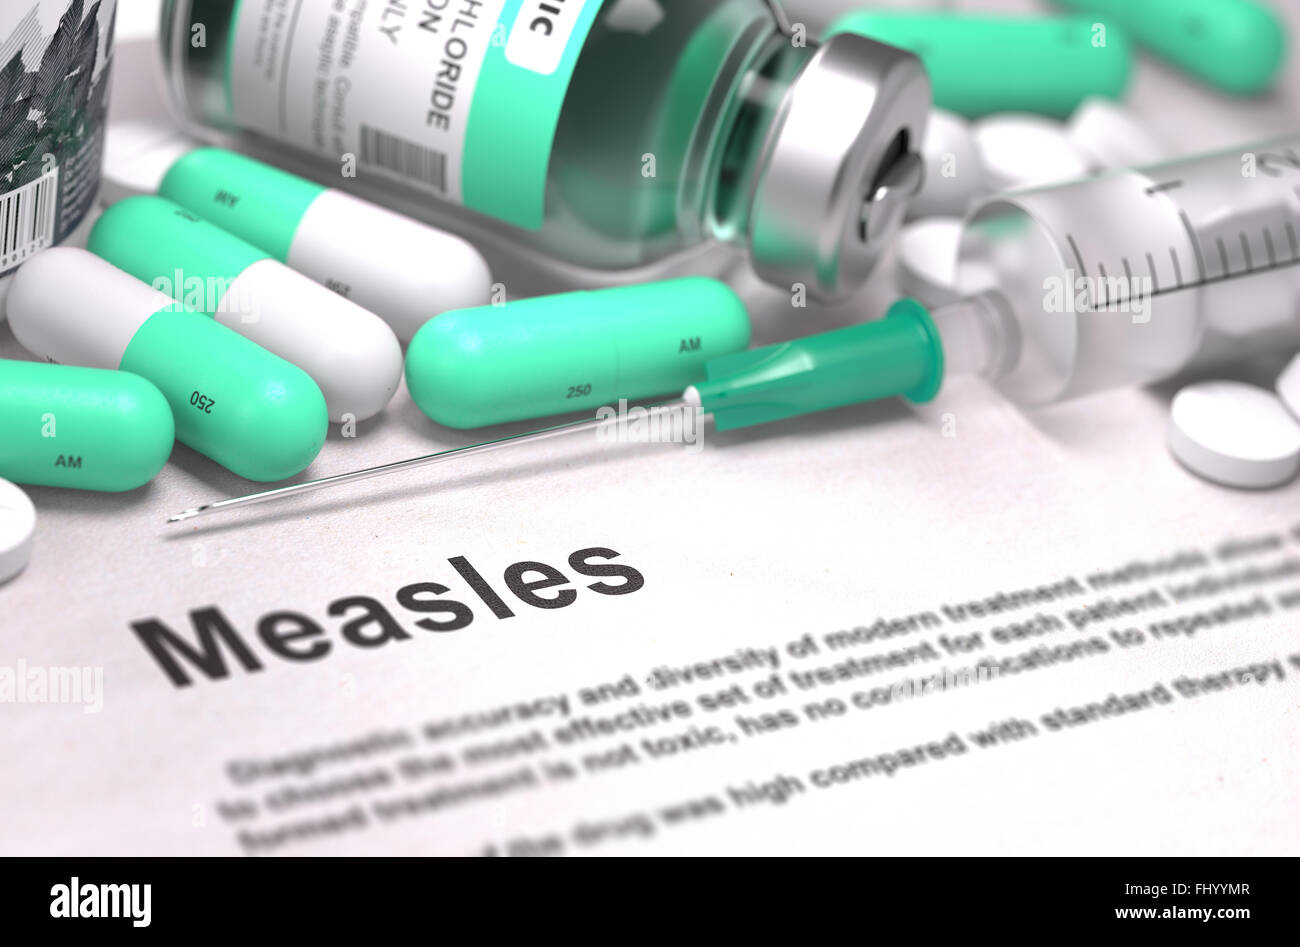 Diagnosis - Measles. Medical Concept with Blurred Background. - Stock Image